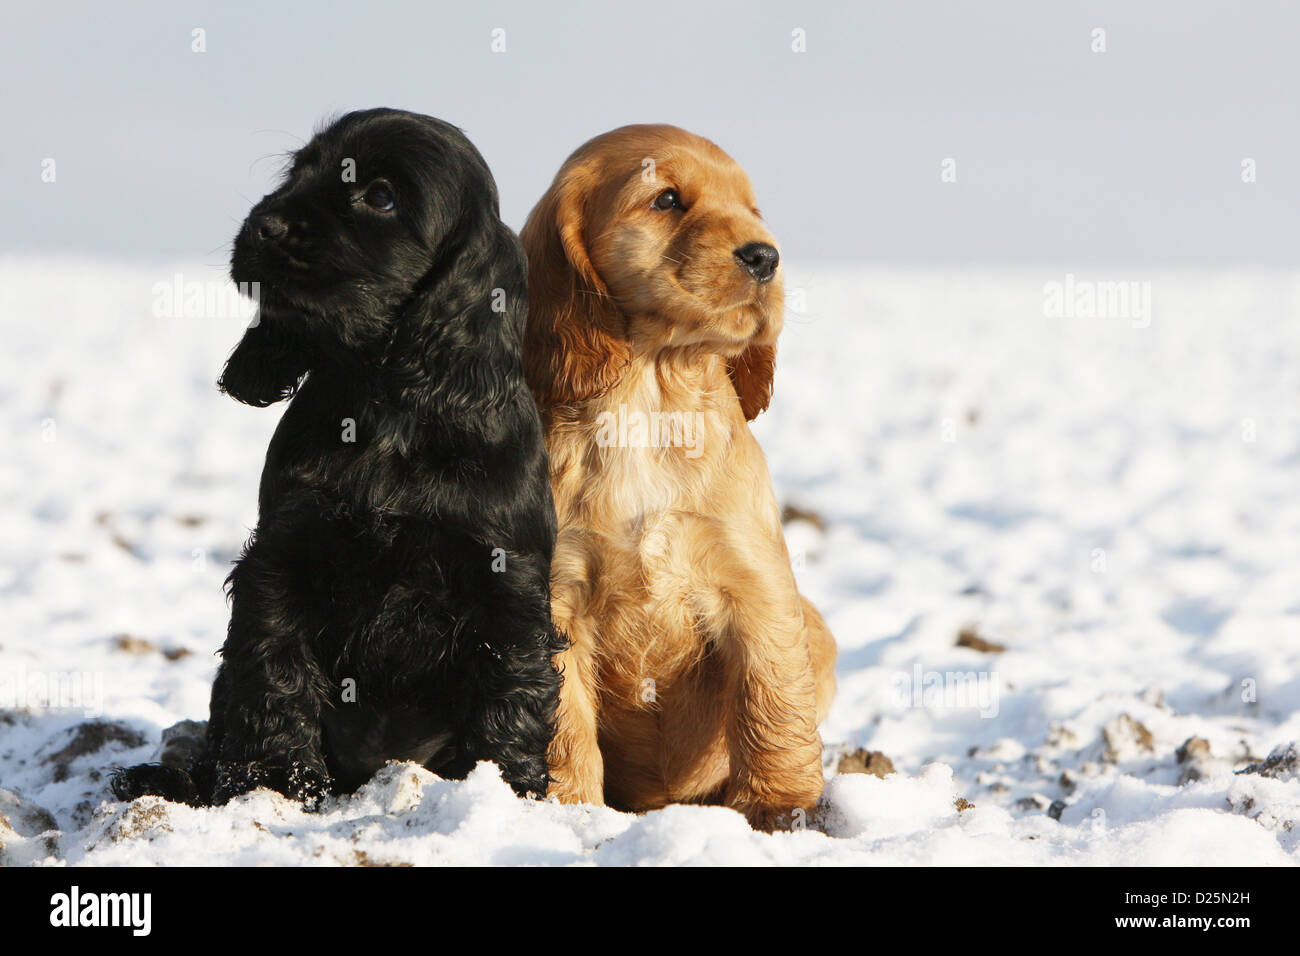 Dog English Cocker Spaniel Two Puppies Black And Red Sitting In Stock Photo Alamy